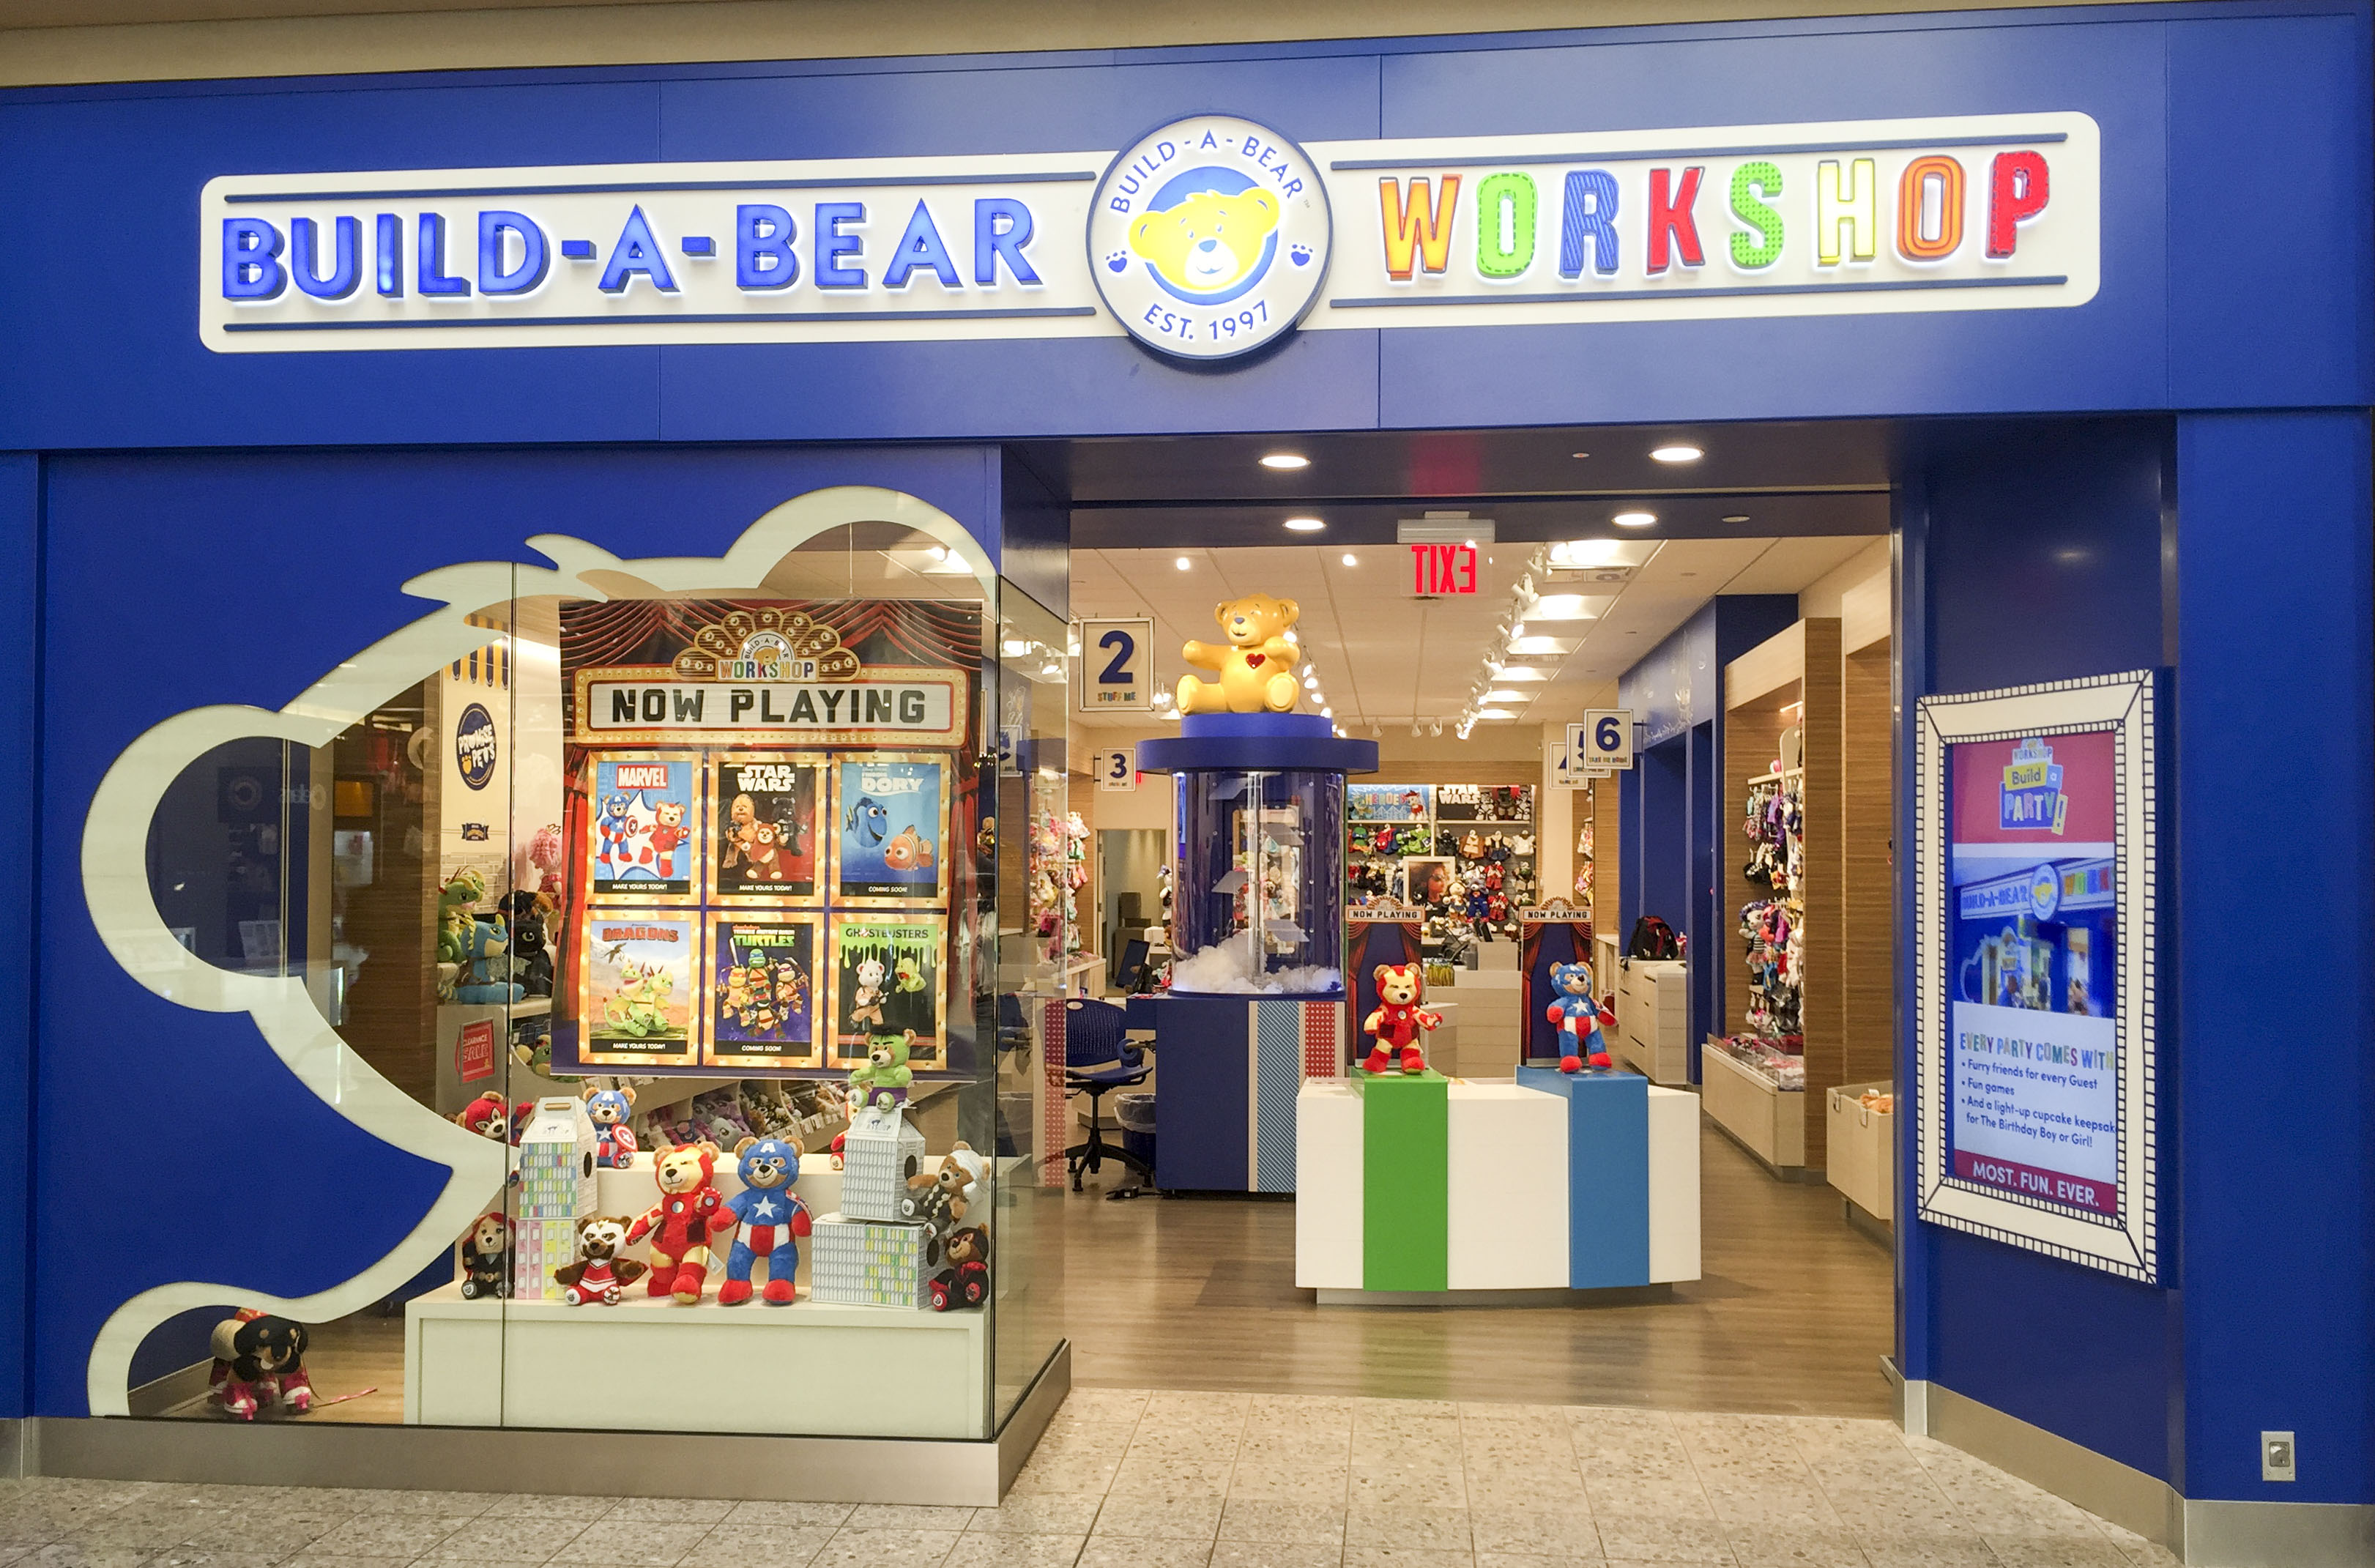 Build-A-Bear Workshop (Evansville)